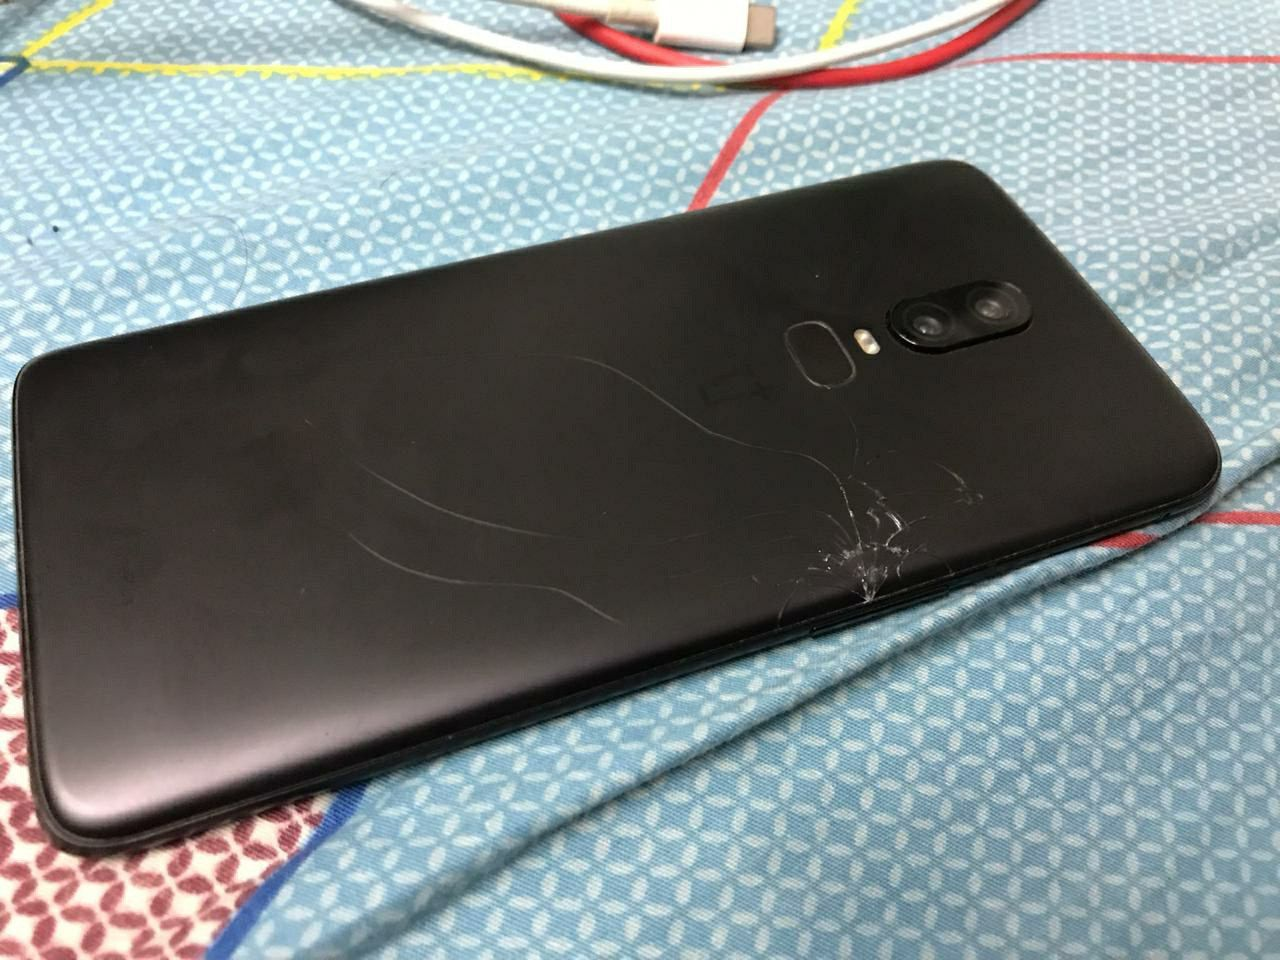 online retailer 2d950 201d6 Oneplus 6 back glass panel cracks automatically! - OnePlus Community